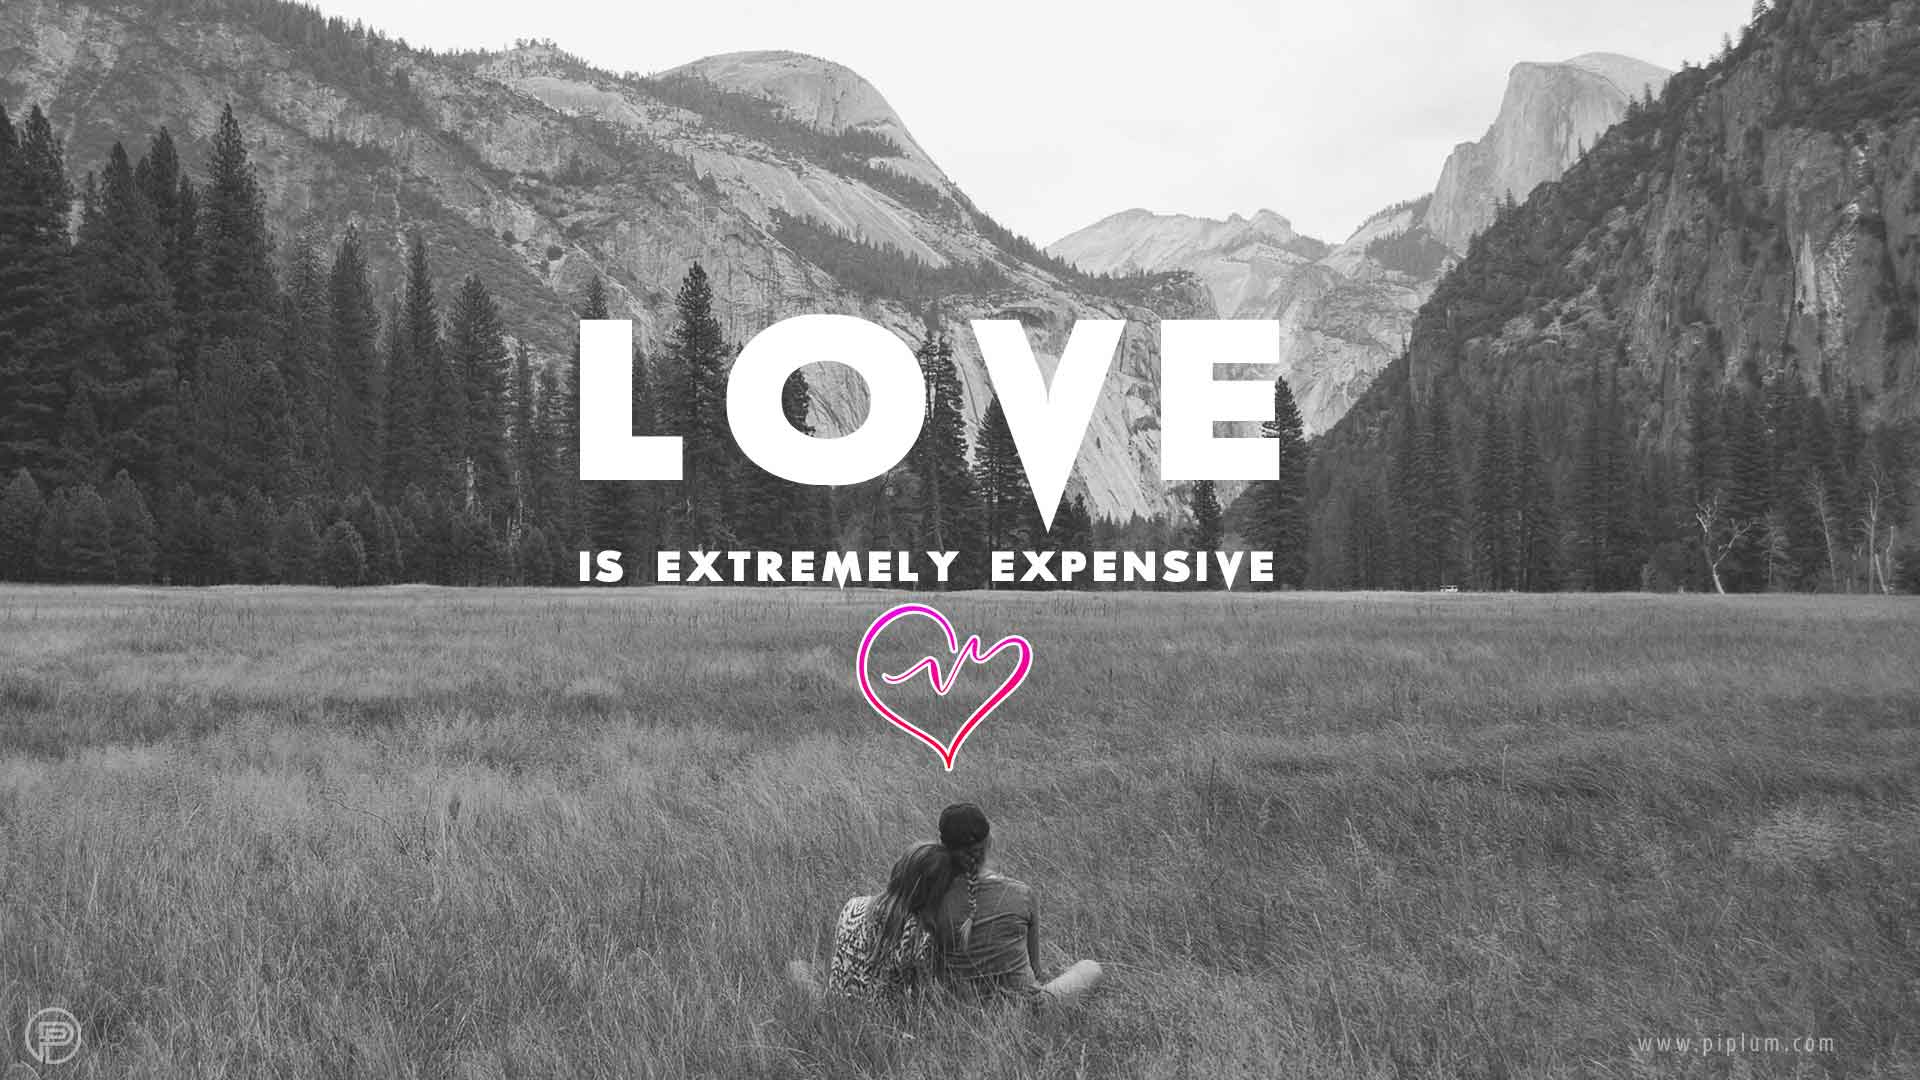 Love-Is-Extremely-Expensive-famous-saying-quote